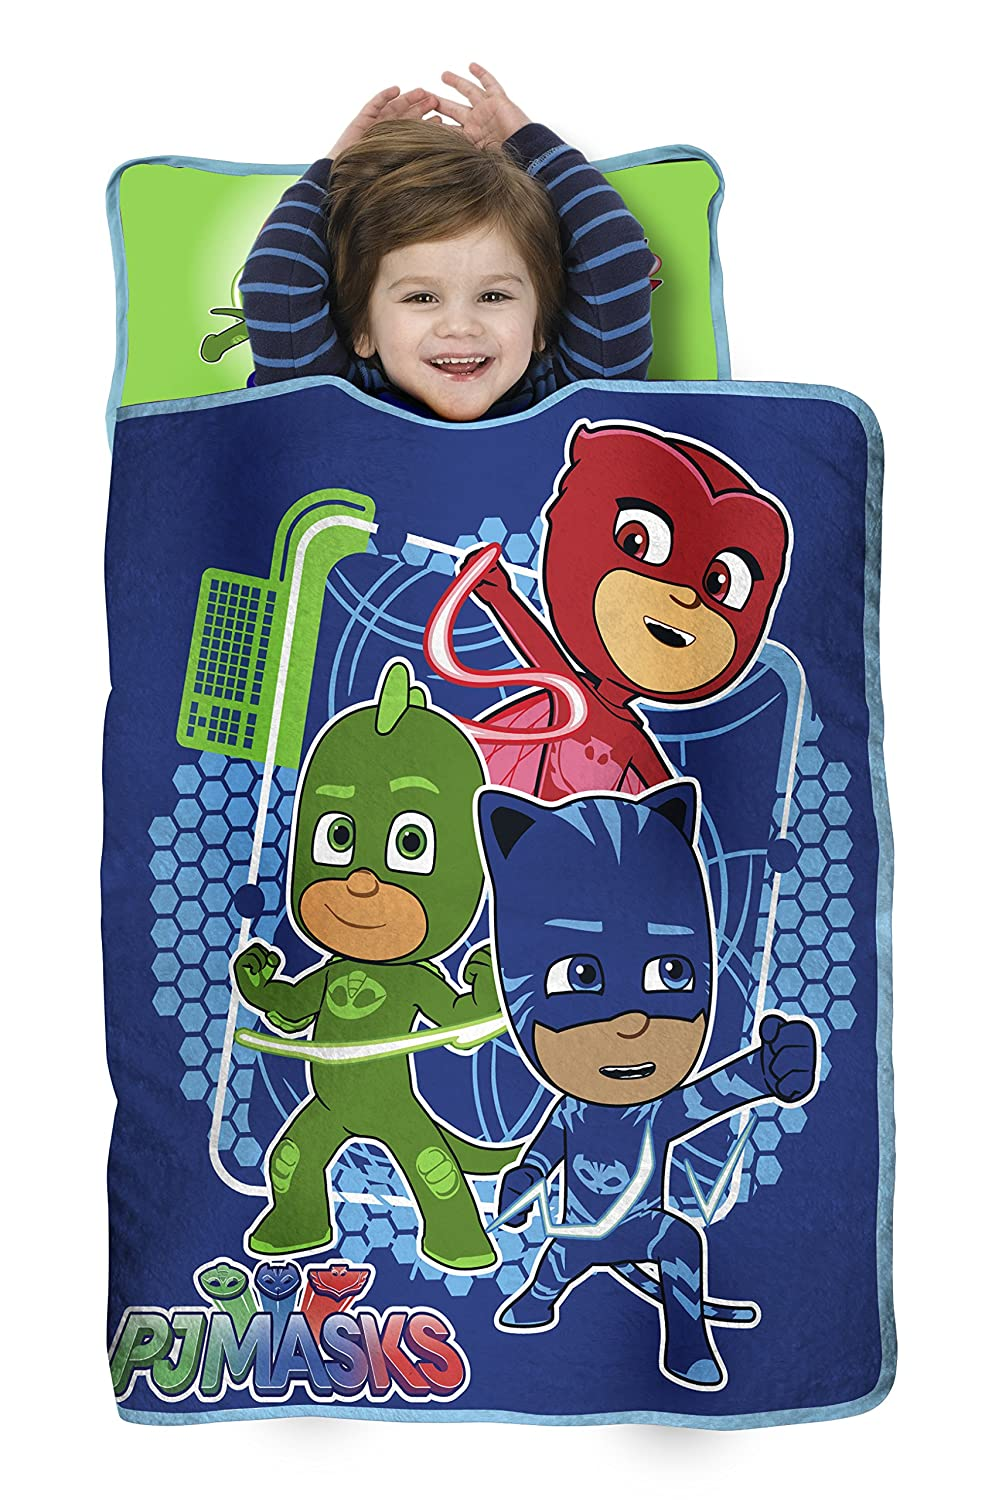 PJ Masks All Shout Horray Toddler Nap Mat - Includes Pillow and Fleece Blanket – Great for Boys and Girls Napping at Daycare, Preschool, Or Kindergarten - Fits Sleeping Toddlers and Young Children PJ111